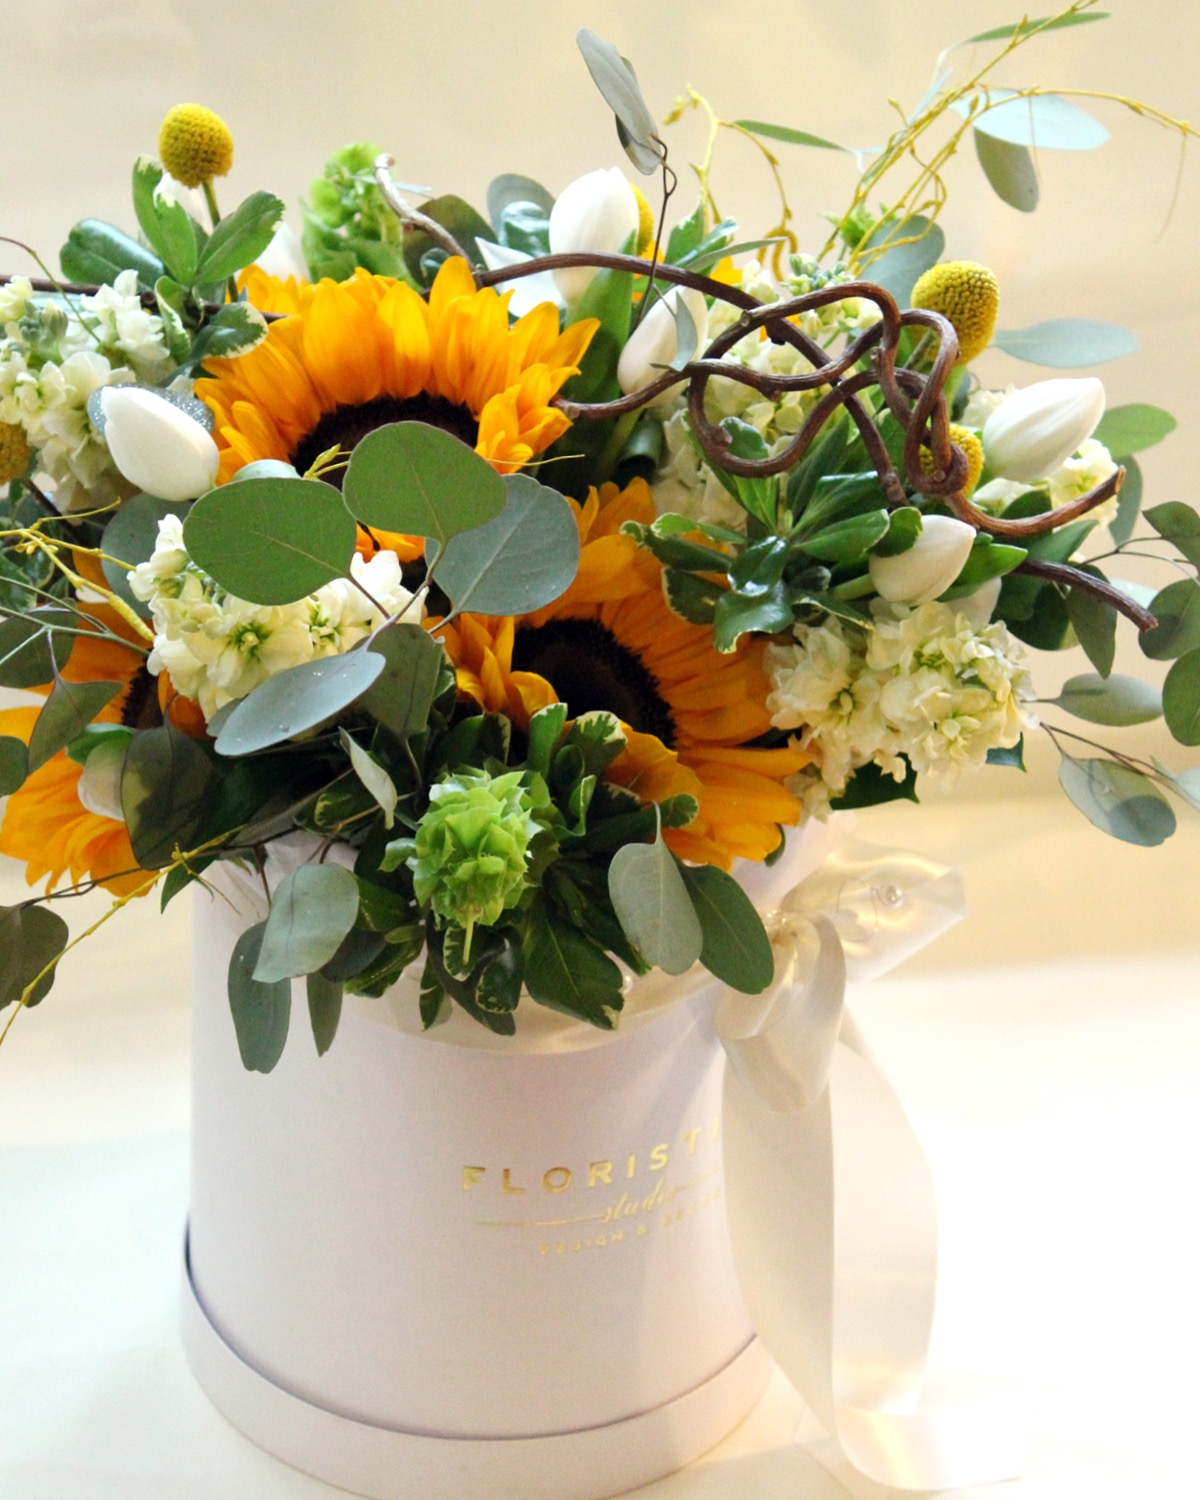 hatbox with sunflowers.jpg